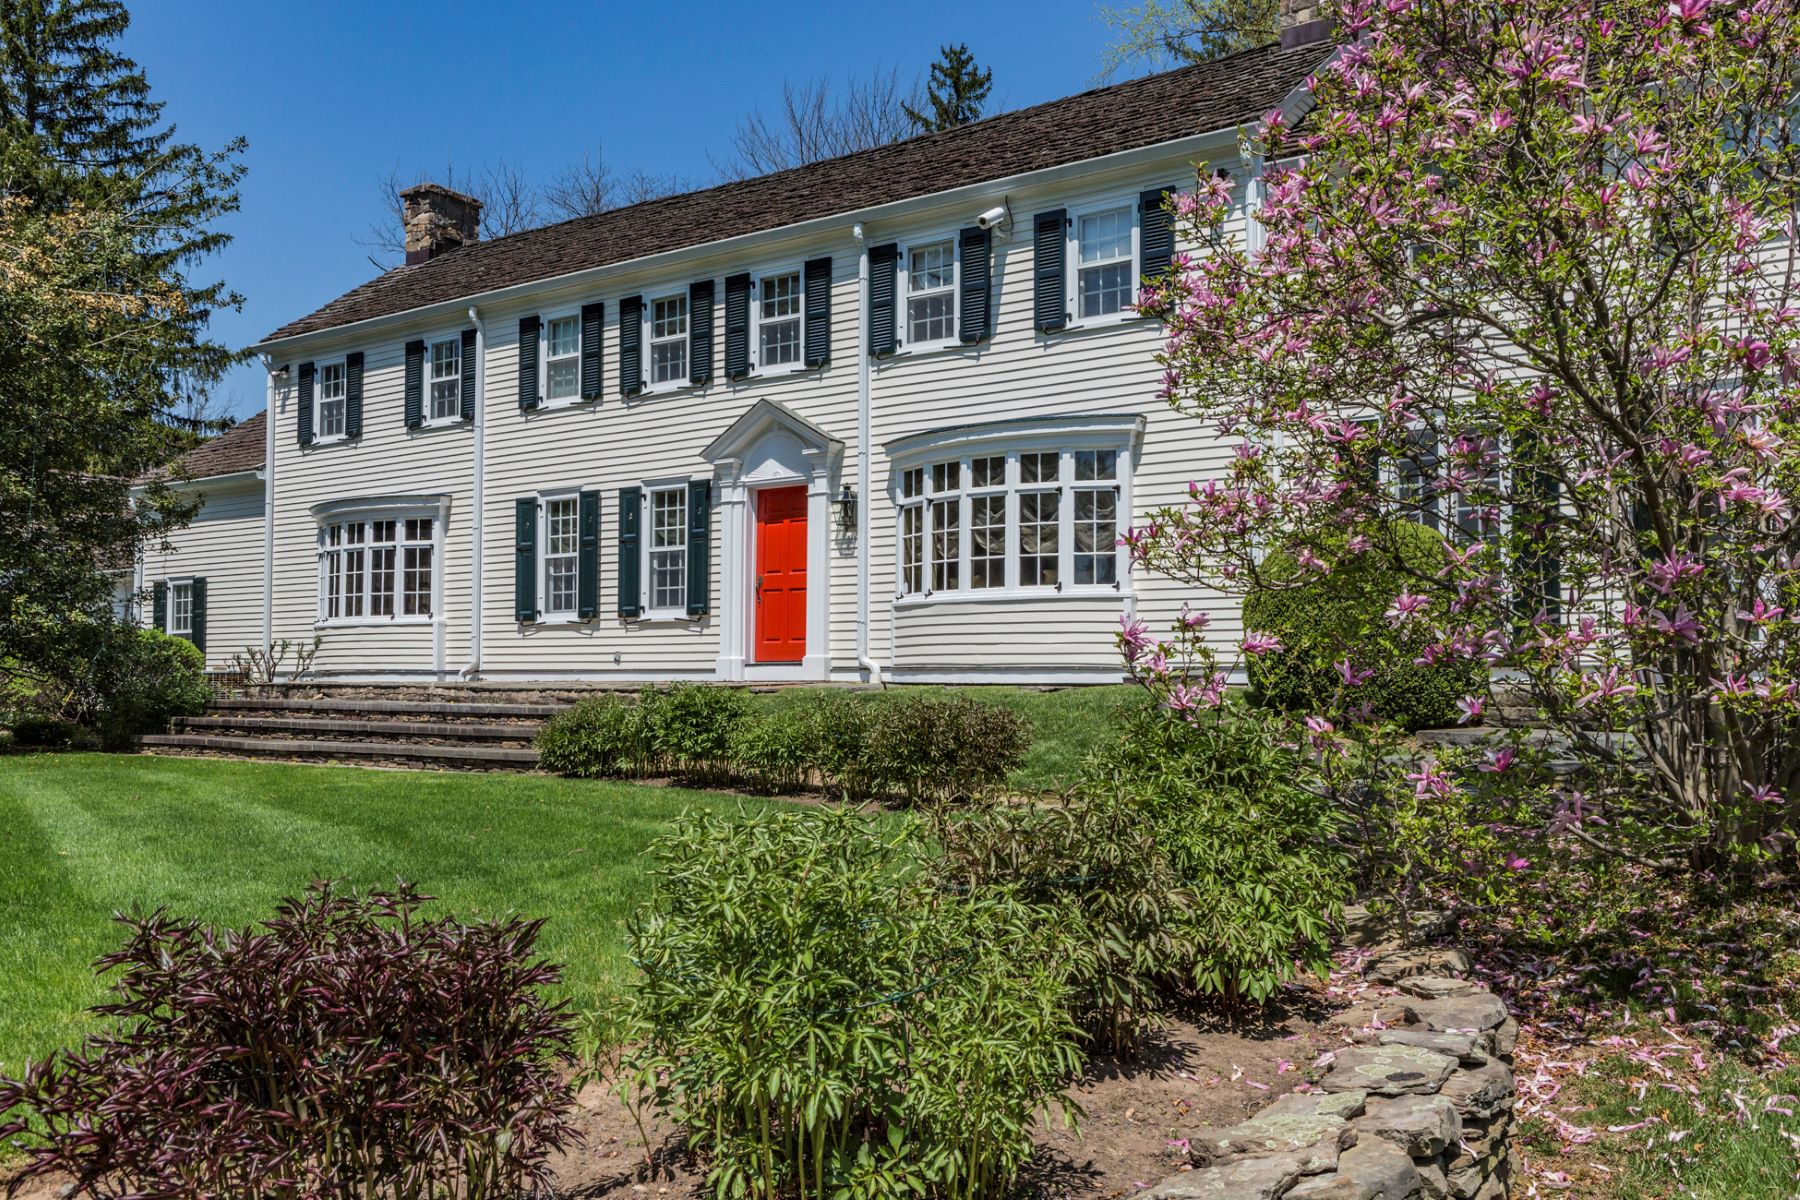 Maison unifamiliale pour l Vente à A Good-For-The-Soul Spirit Embodies This Home 179 Stony Brook Road, Hopewell, New Jersey 08525 États-UnisDans/Autour: Hopewell Township